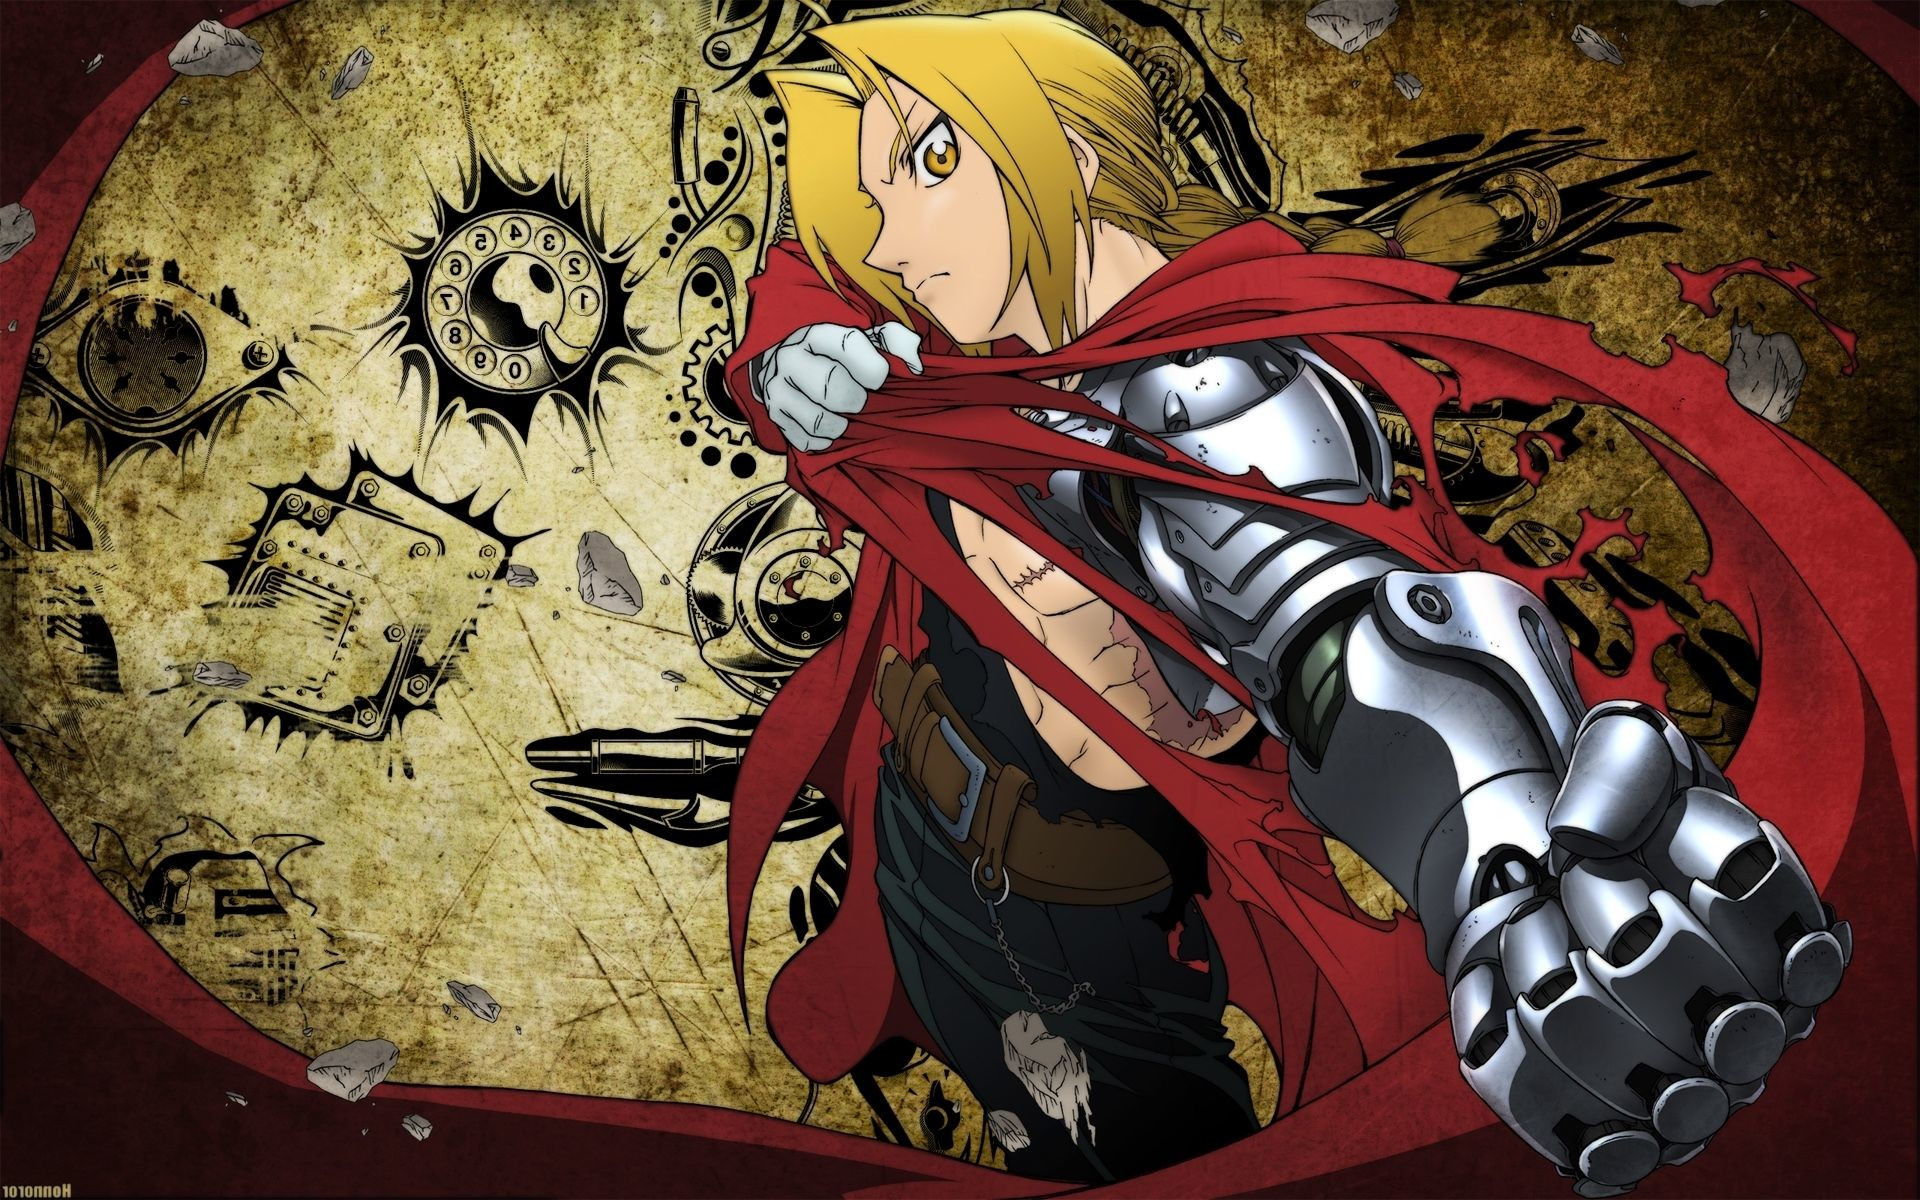 1920x1200 Fullmetal Alchemist Wallpaper Full Hd - WALLPAPER HD